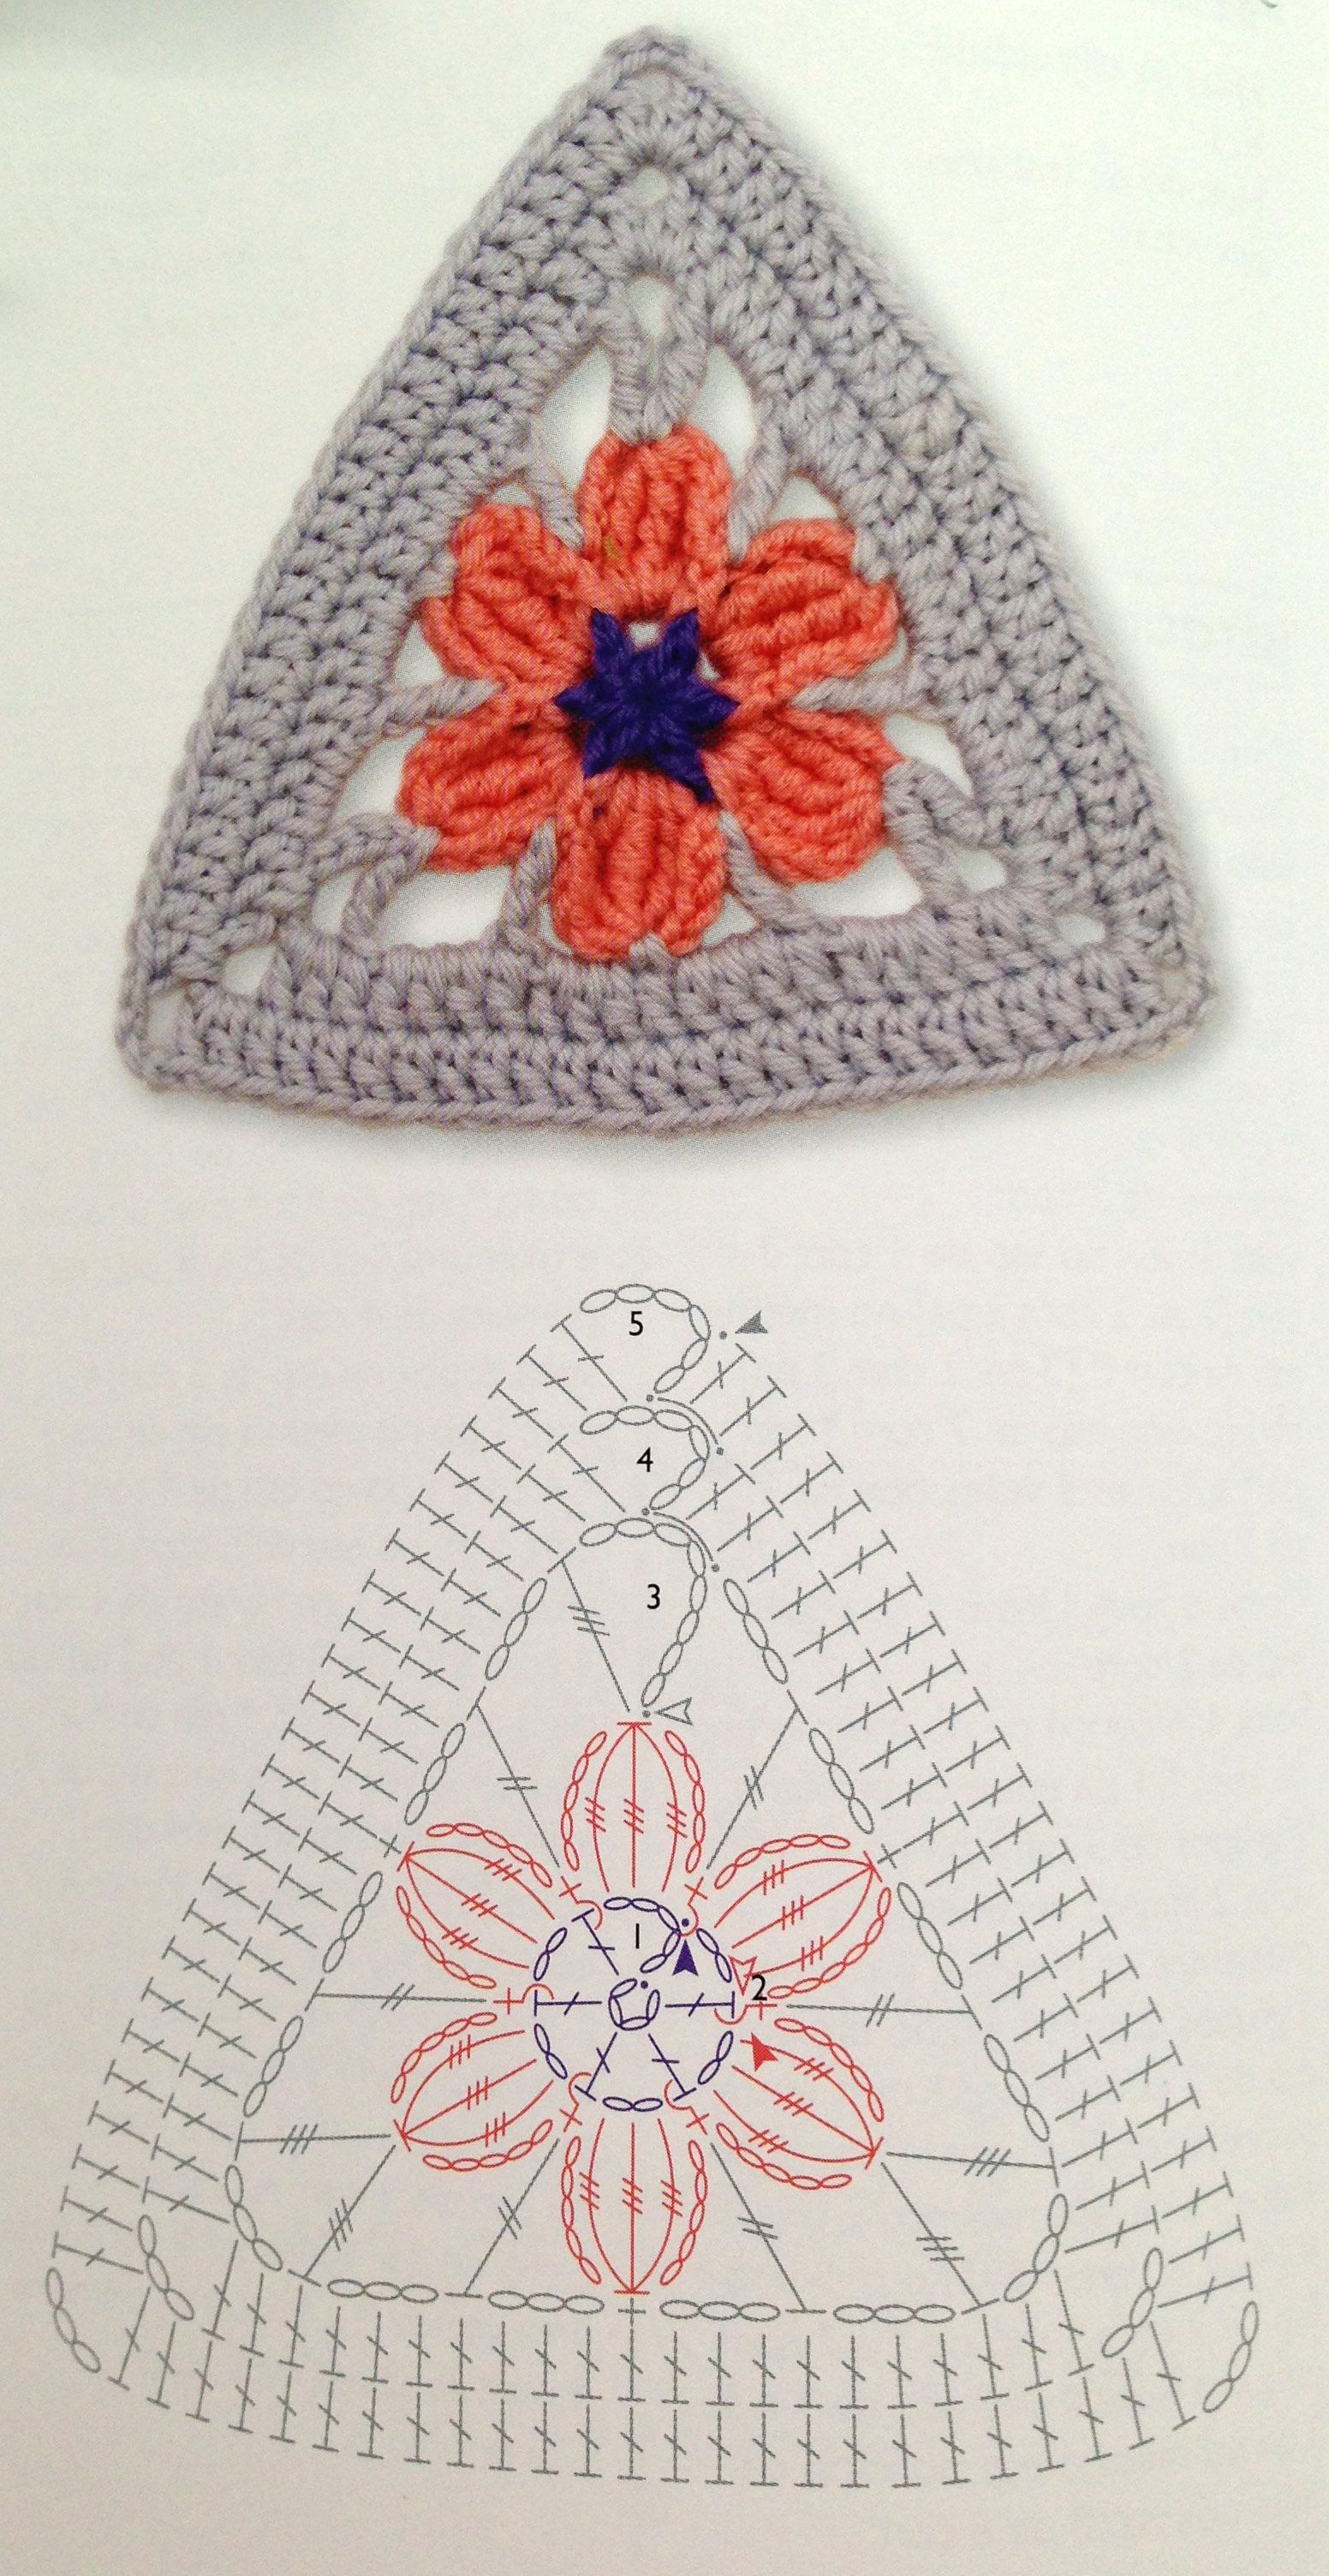 Crochet Triangle : triangle crochet flower pattern Crochet Pinterest